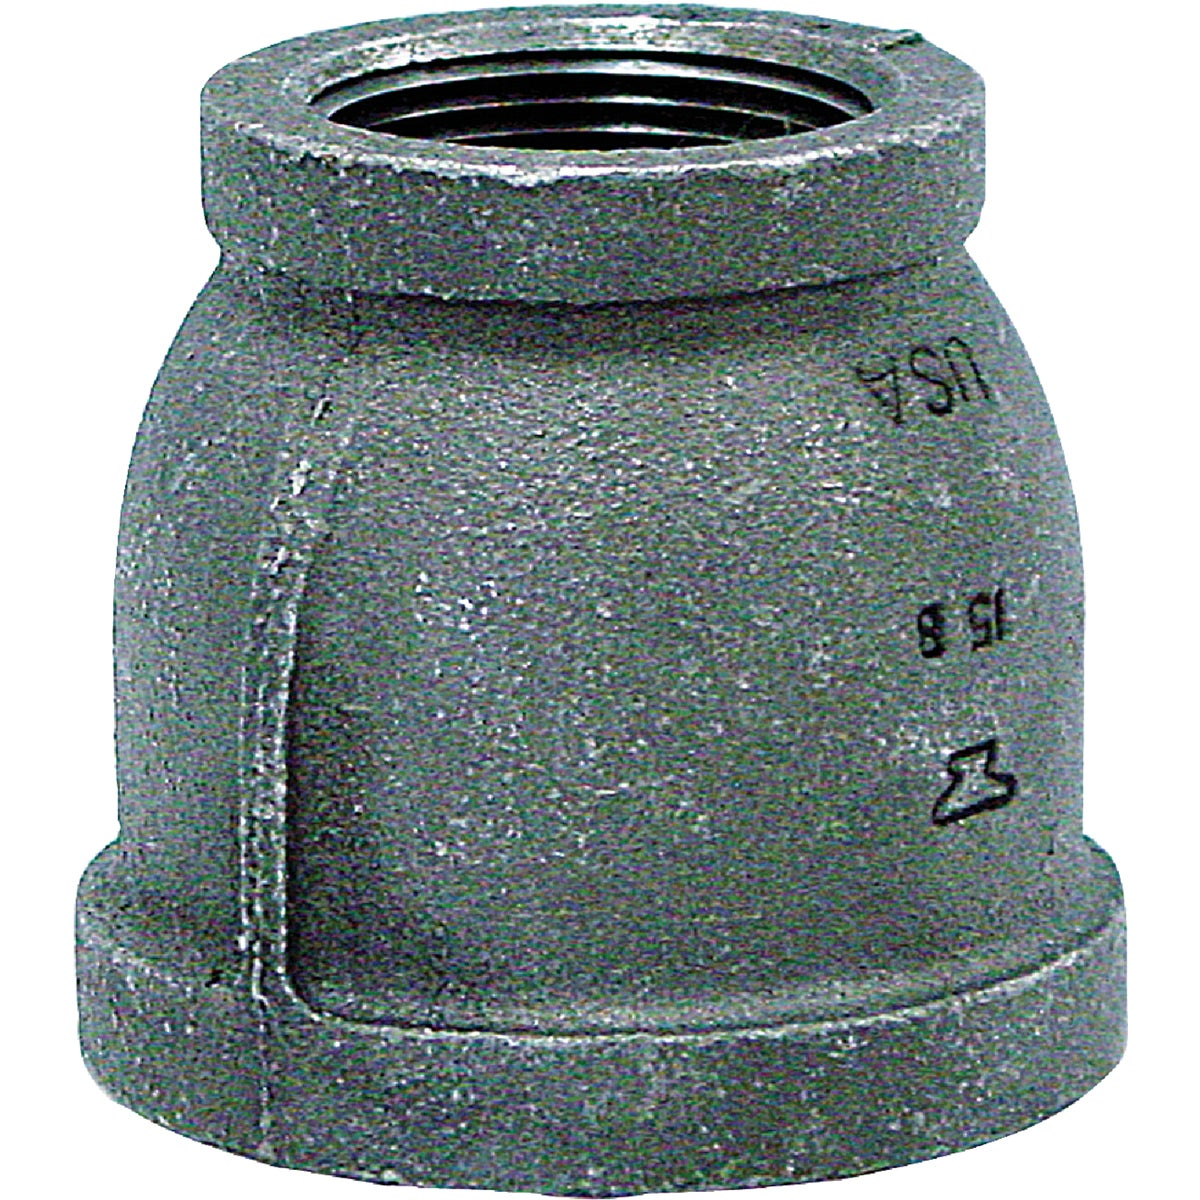 1-1/2X1 BLK COUPLING - 8700134607 by Anvil International